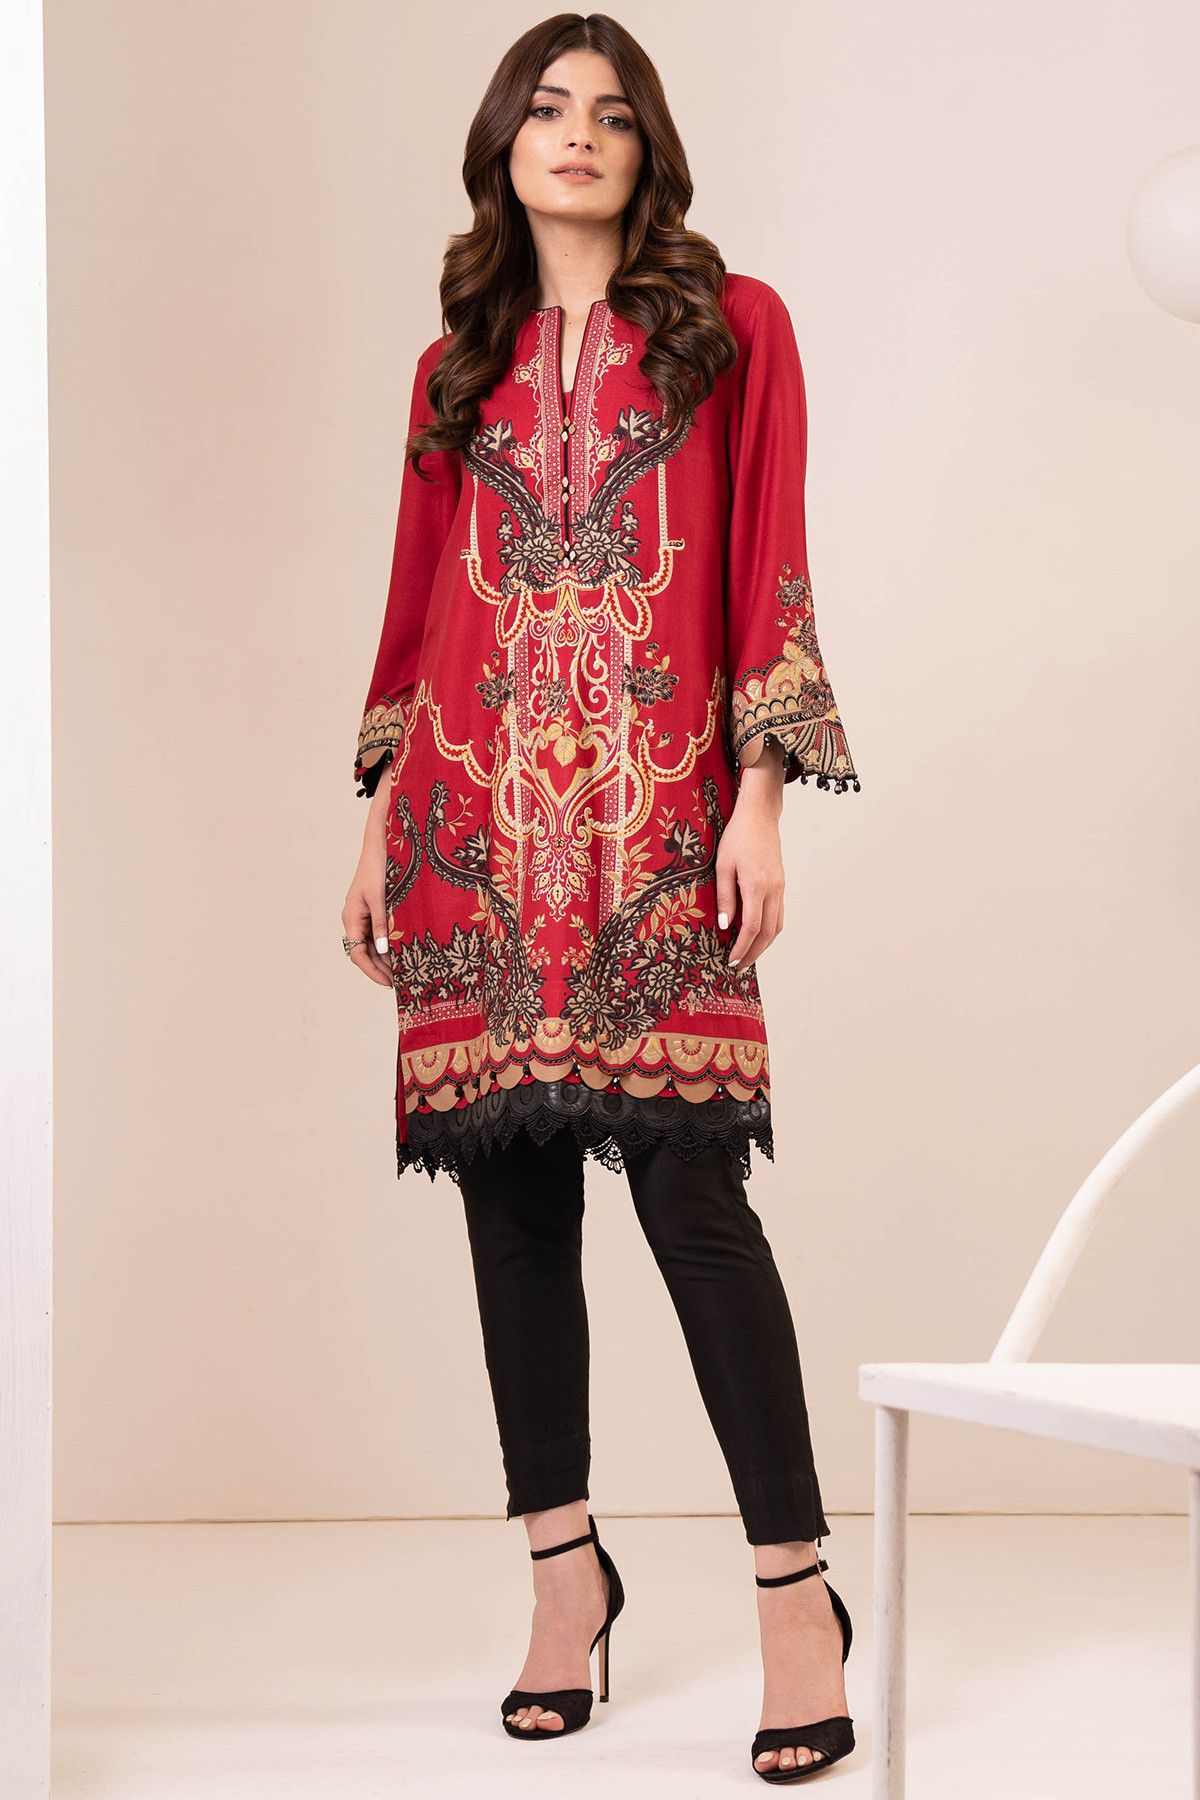 Fall Winter Embroidered Dresses